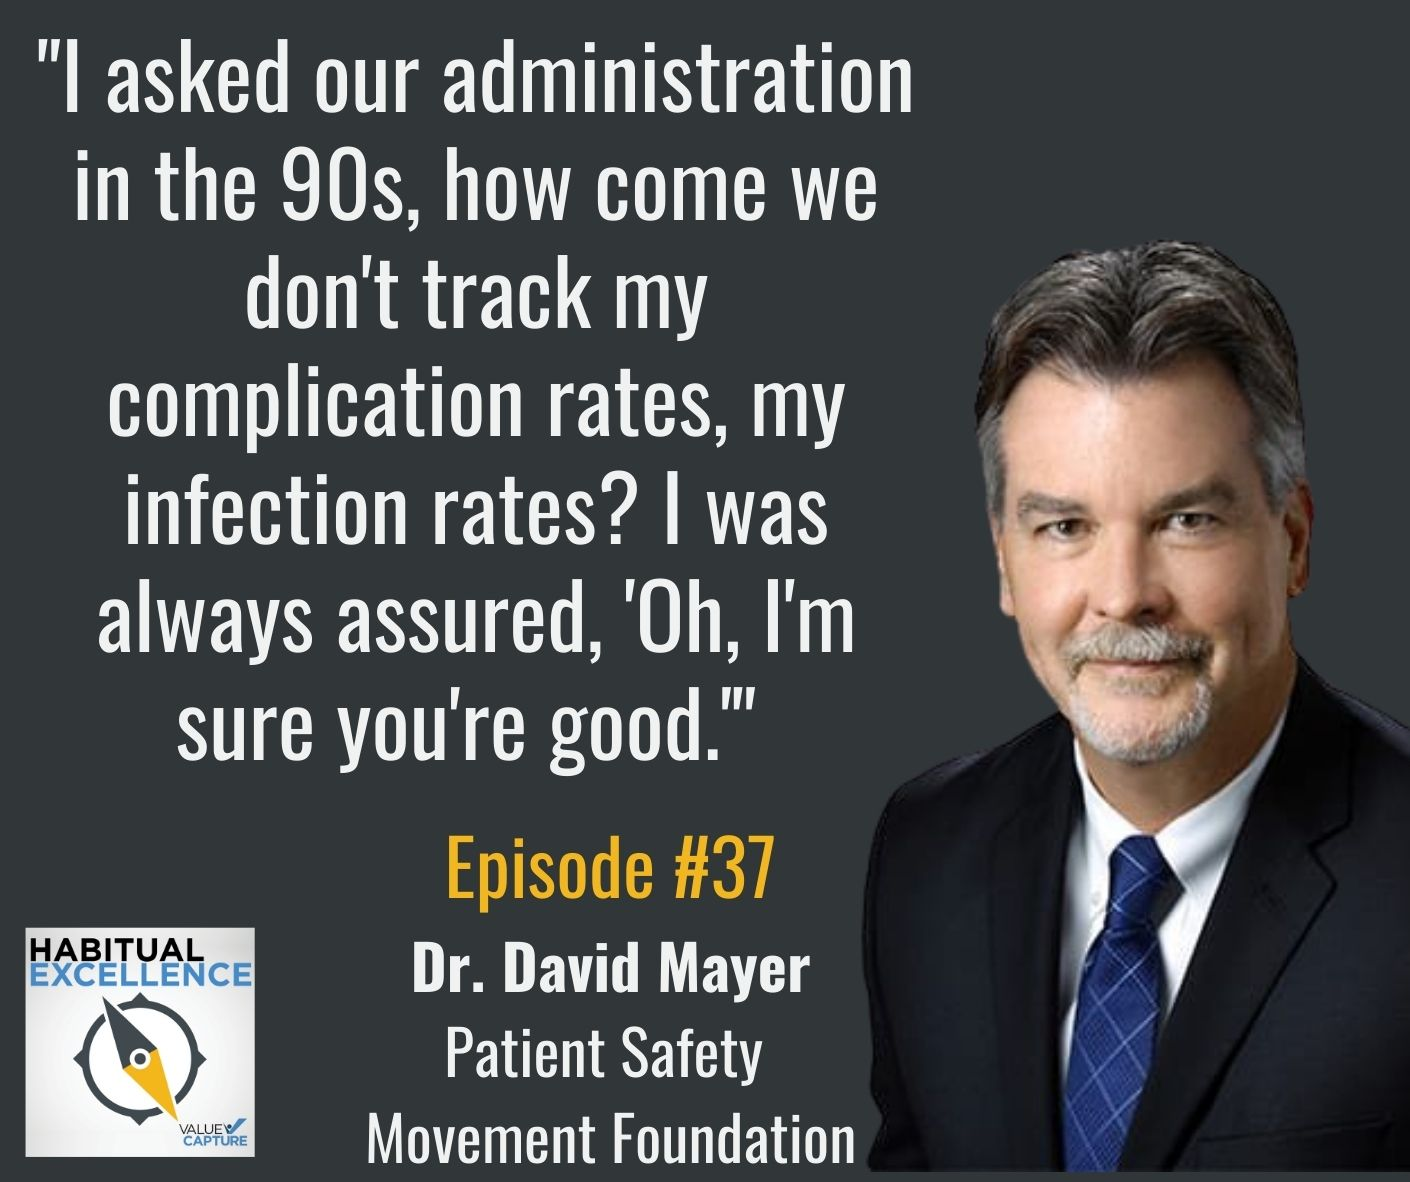 """""""I asked our administration in the 90s, how come we don't track my complication rates, my infection rates? I was always assured, 'Oh, I'm sure you're good.'"""""""